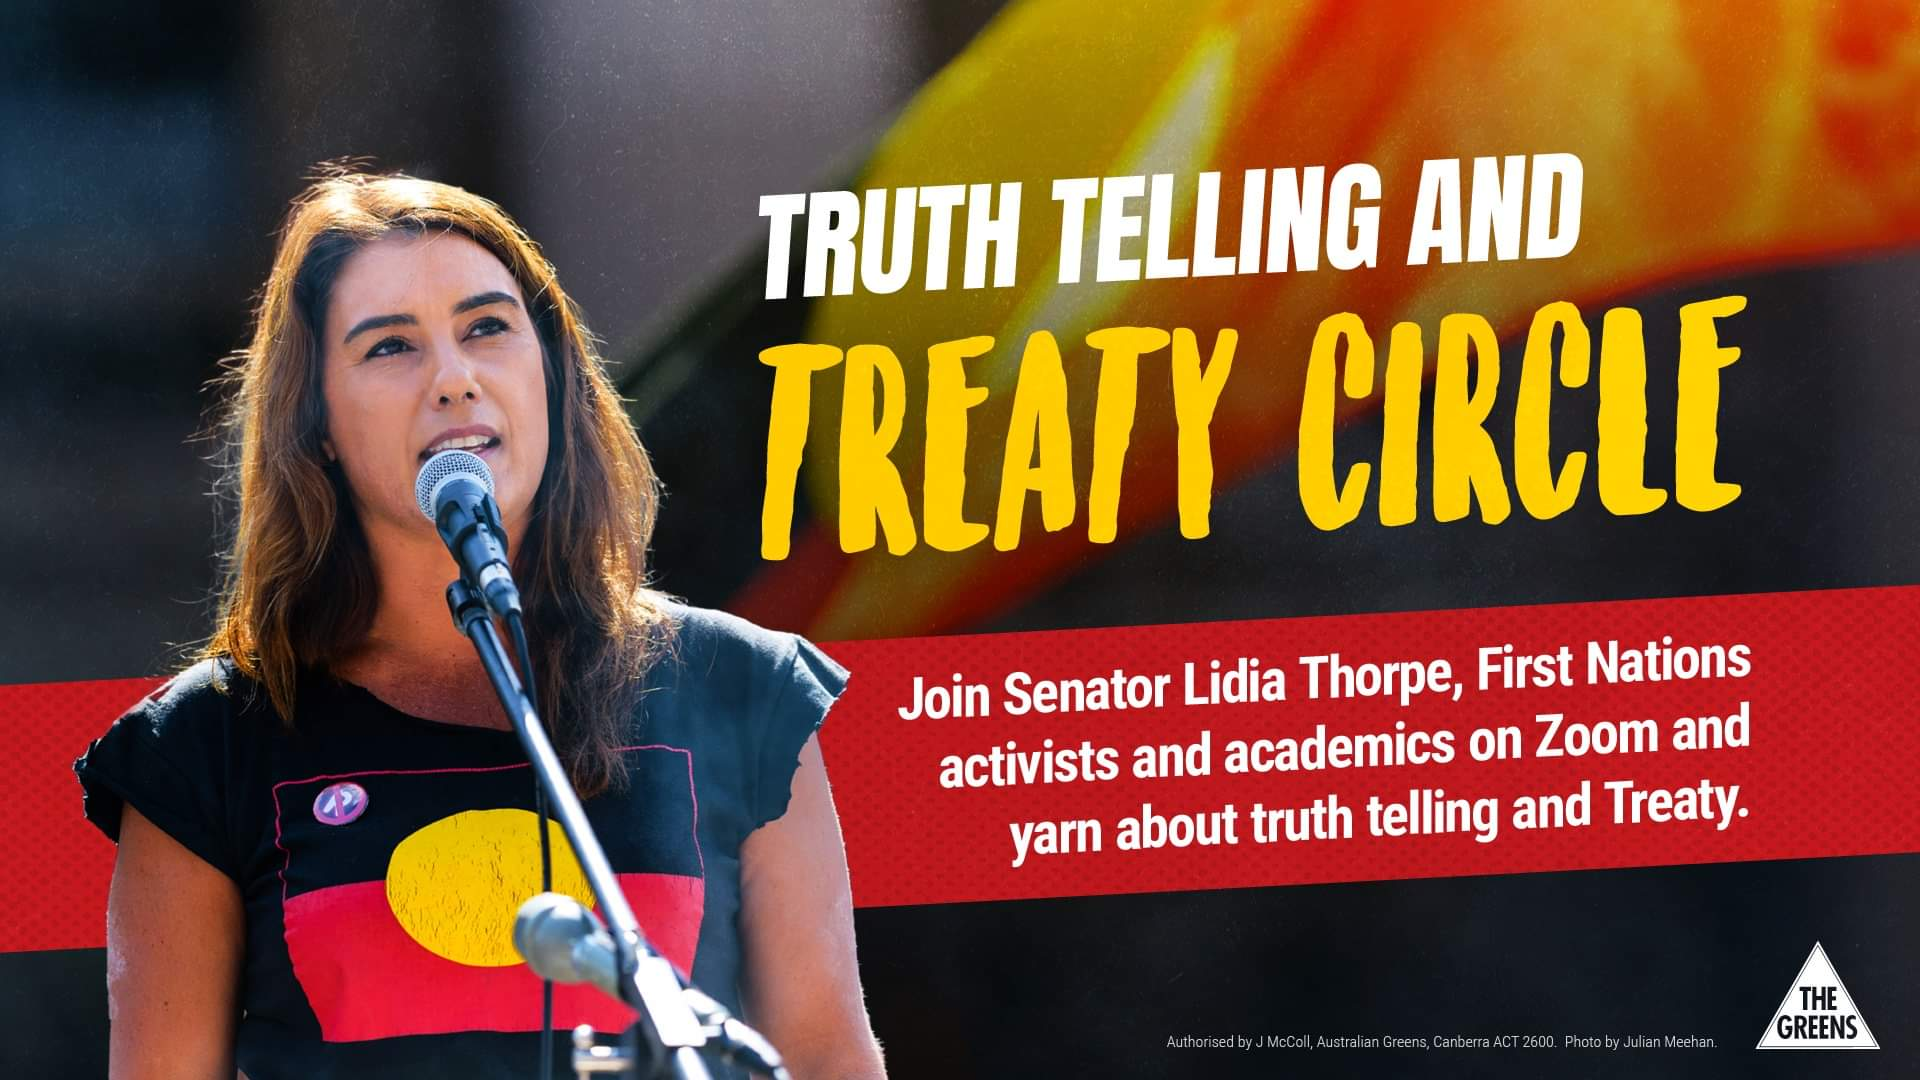 Poster for Truth Telling and Treaty Circle event